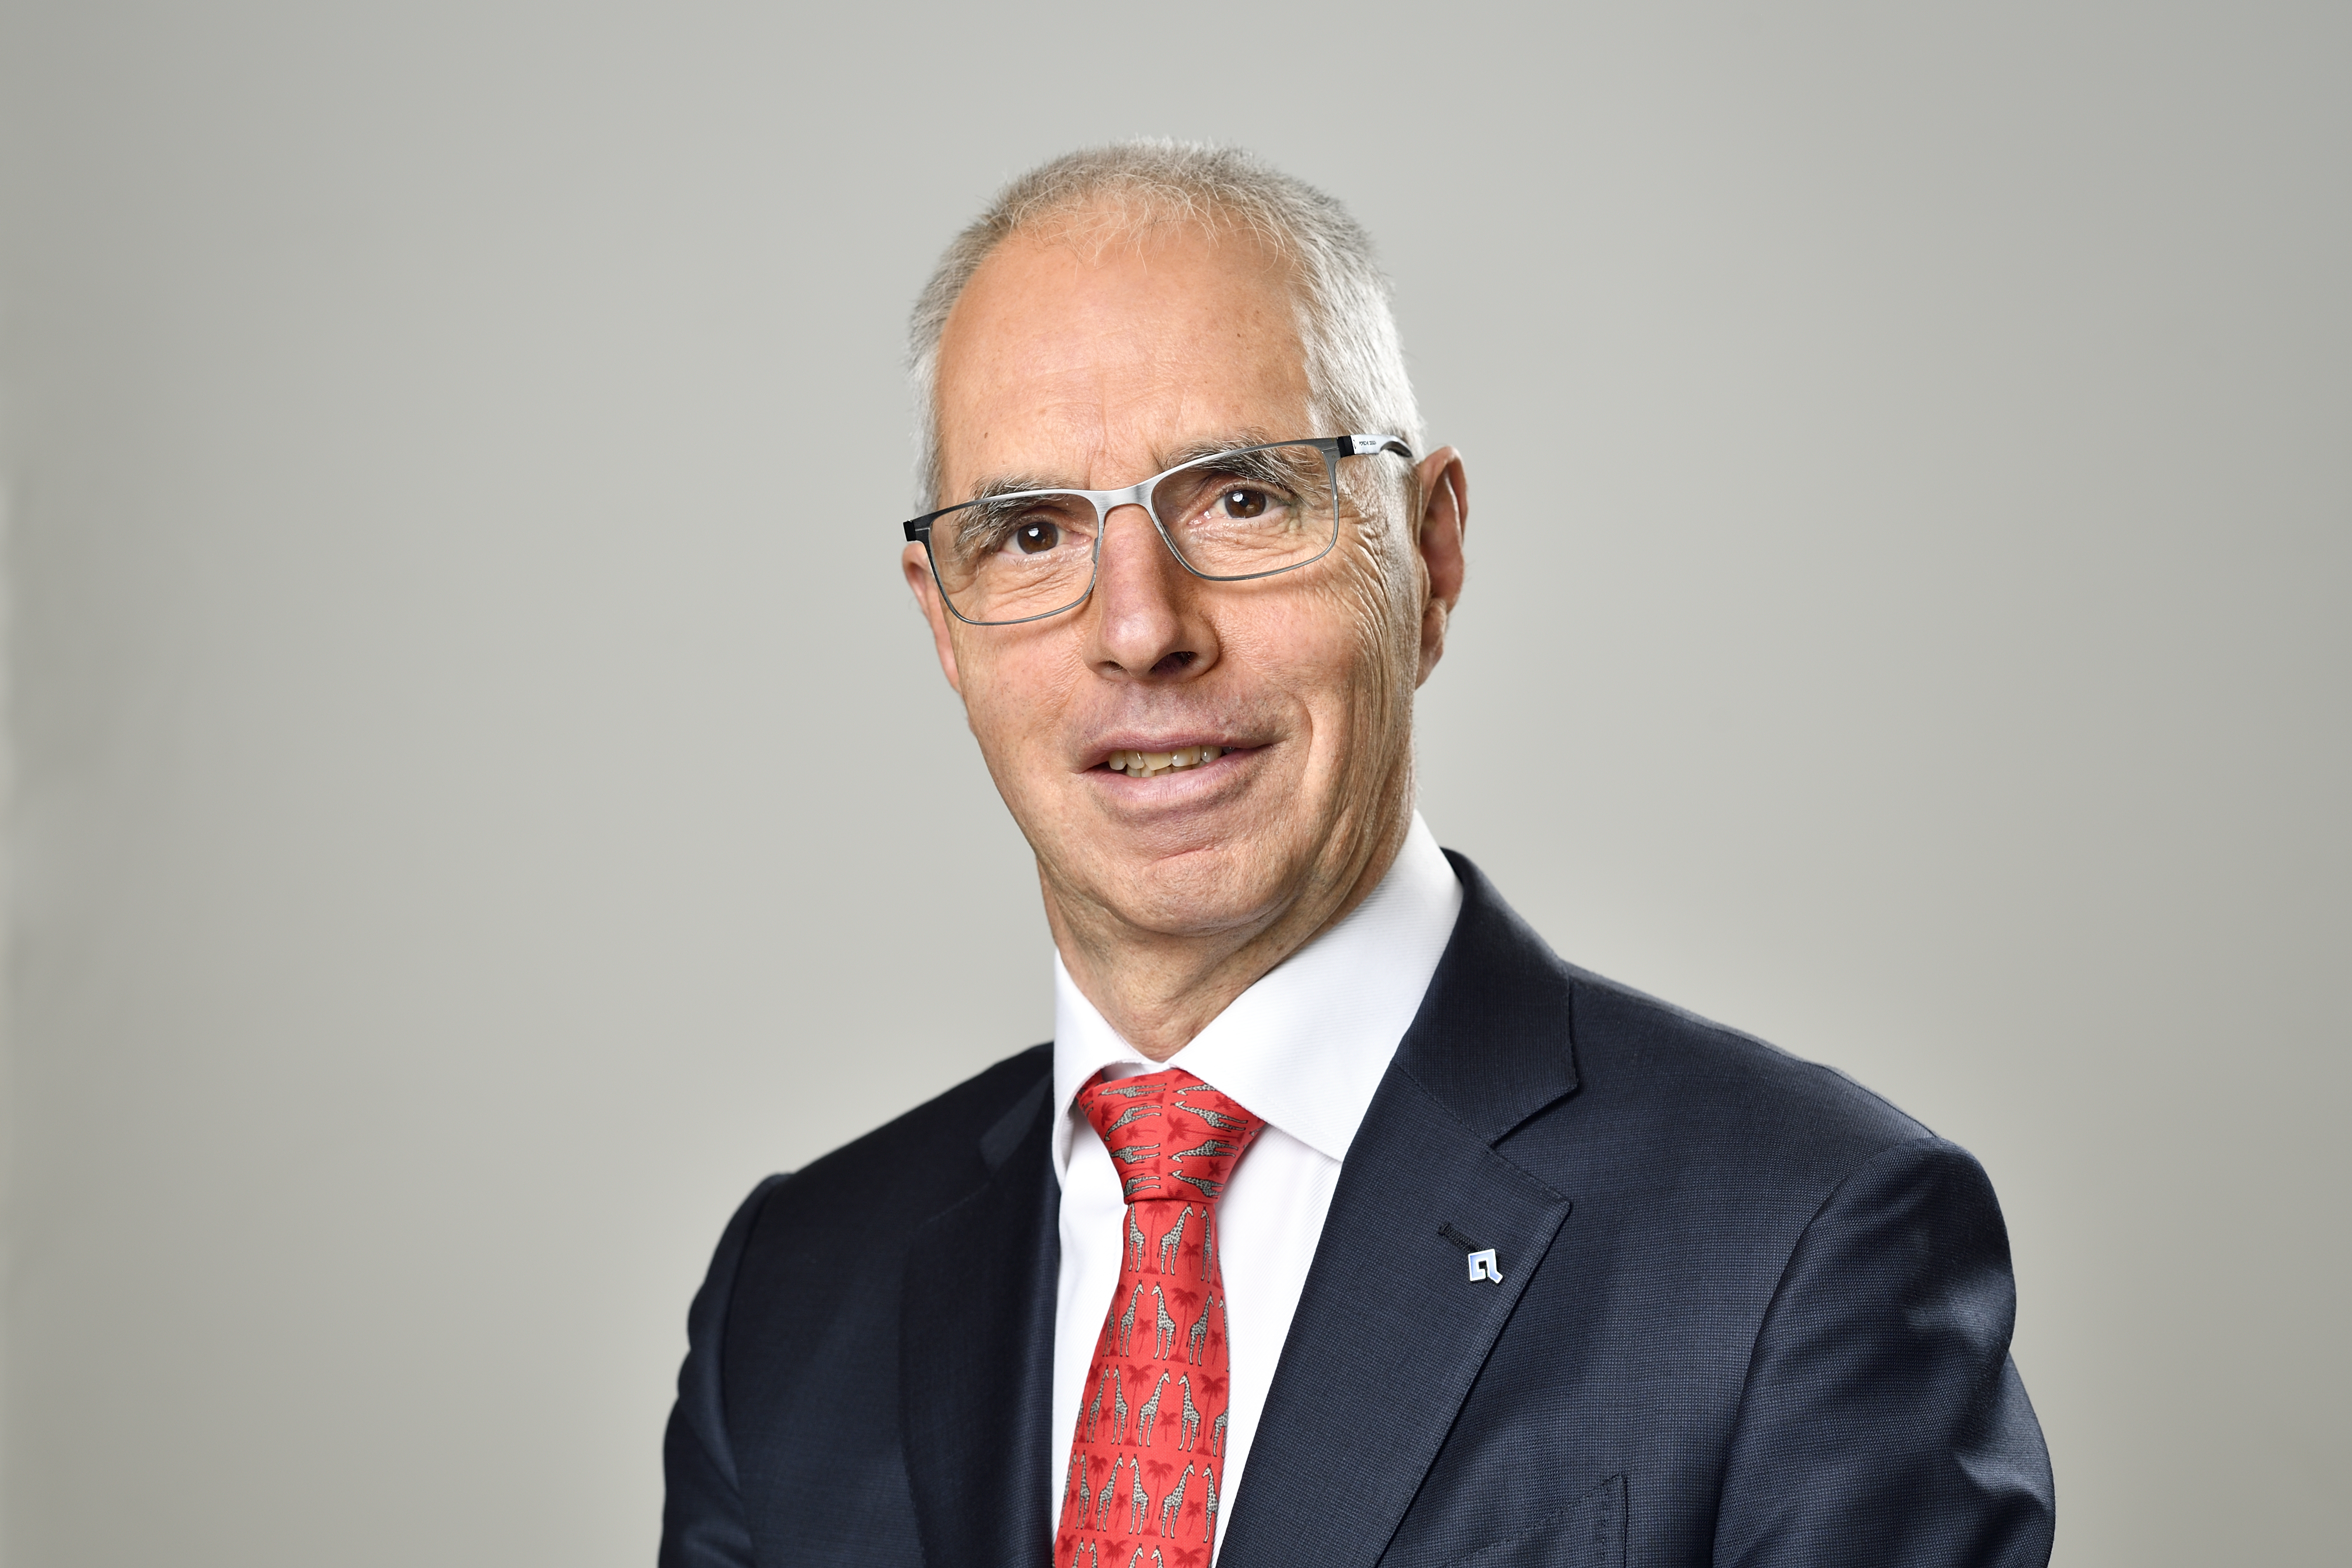 Dr Andreas Beerli, Vice-Chairman